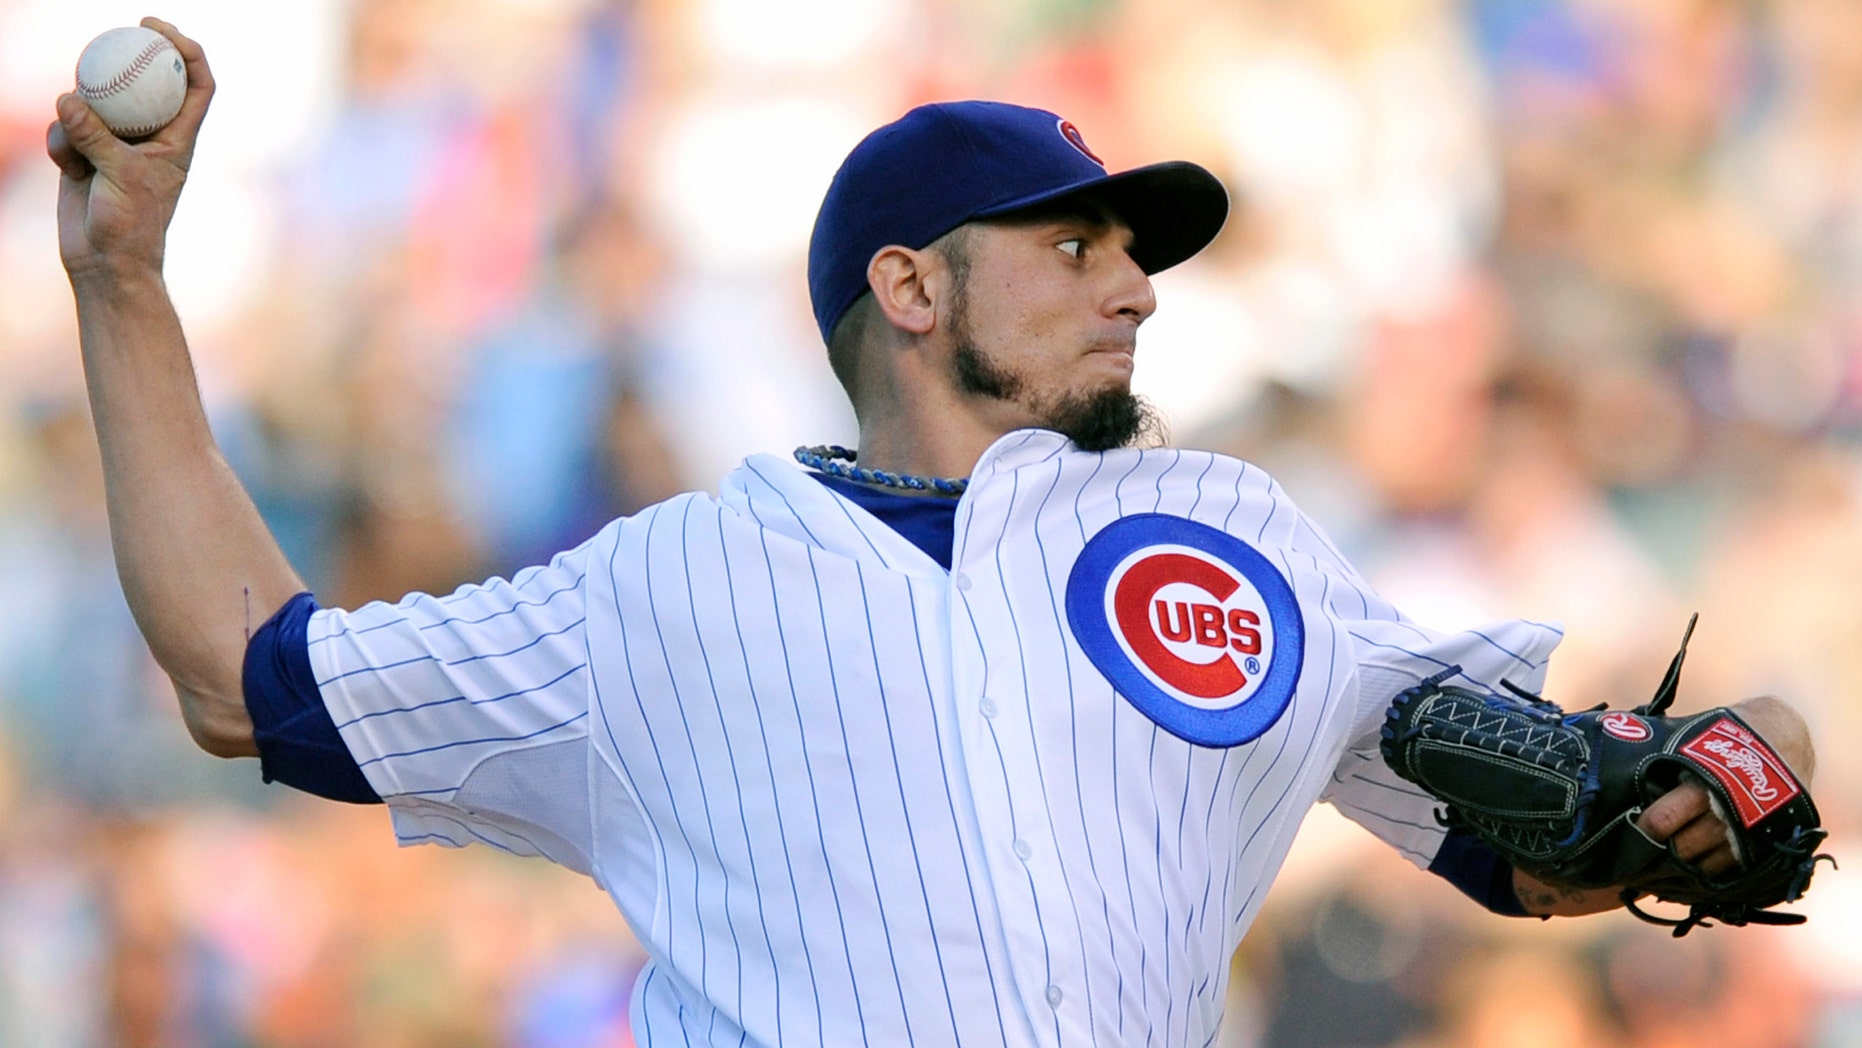 Chicago Cubs starter Matt Garza delivers a pitch during the first inning against the St. Louis Cardinals in Chicago, Saturday, July 13.